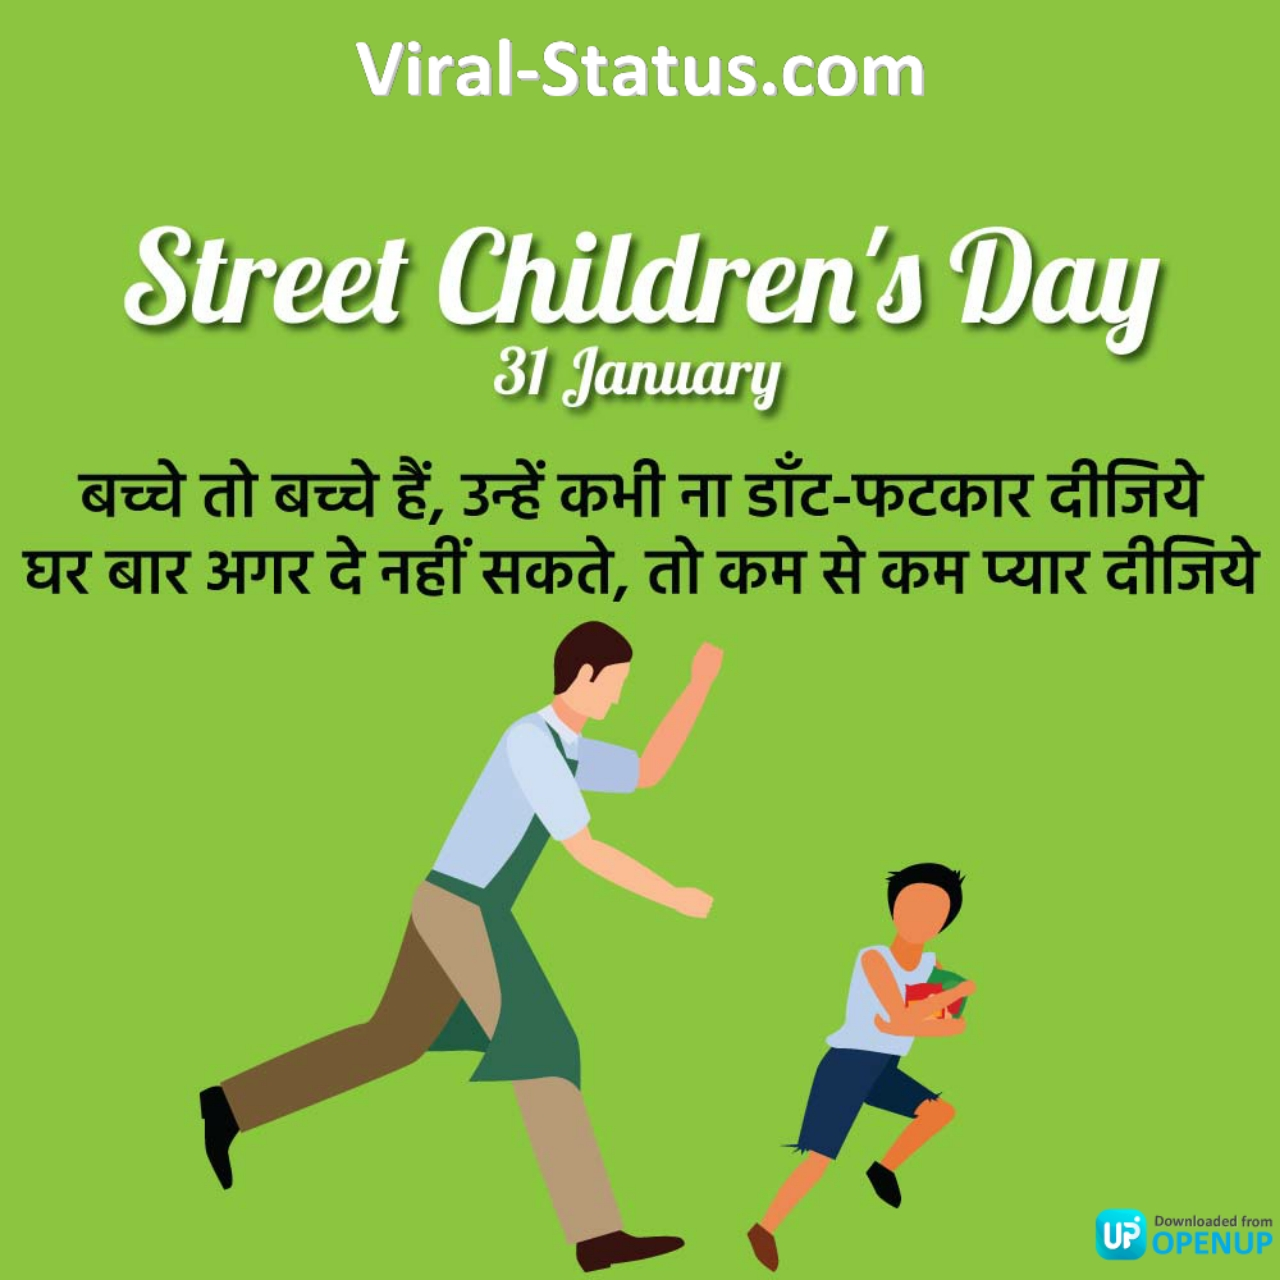 street children's day january 31